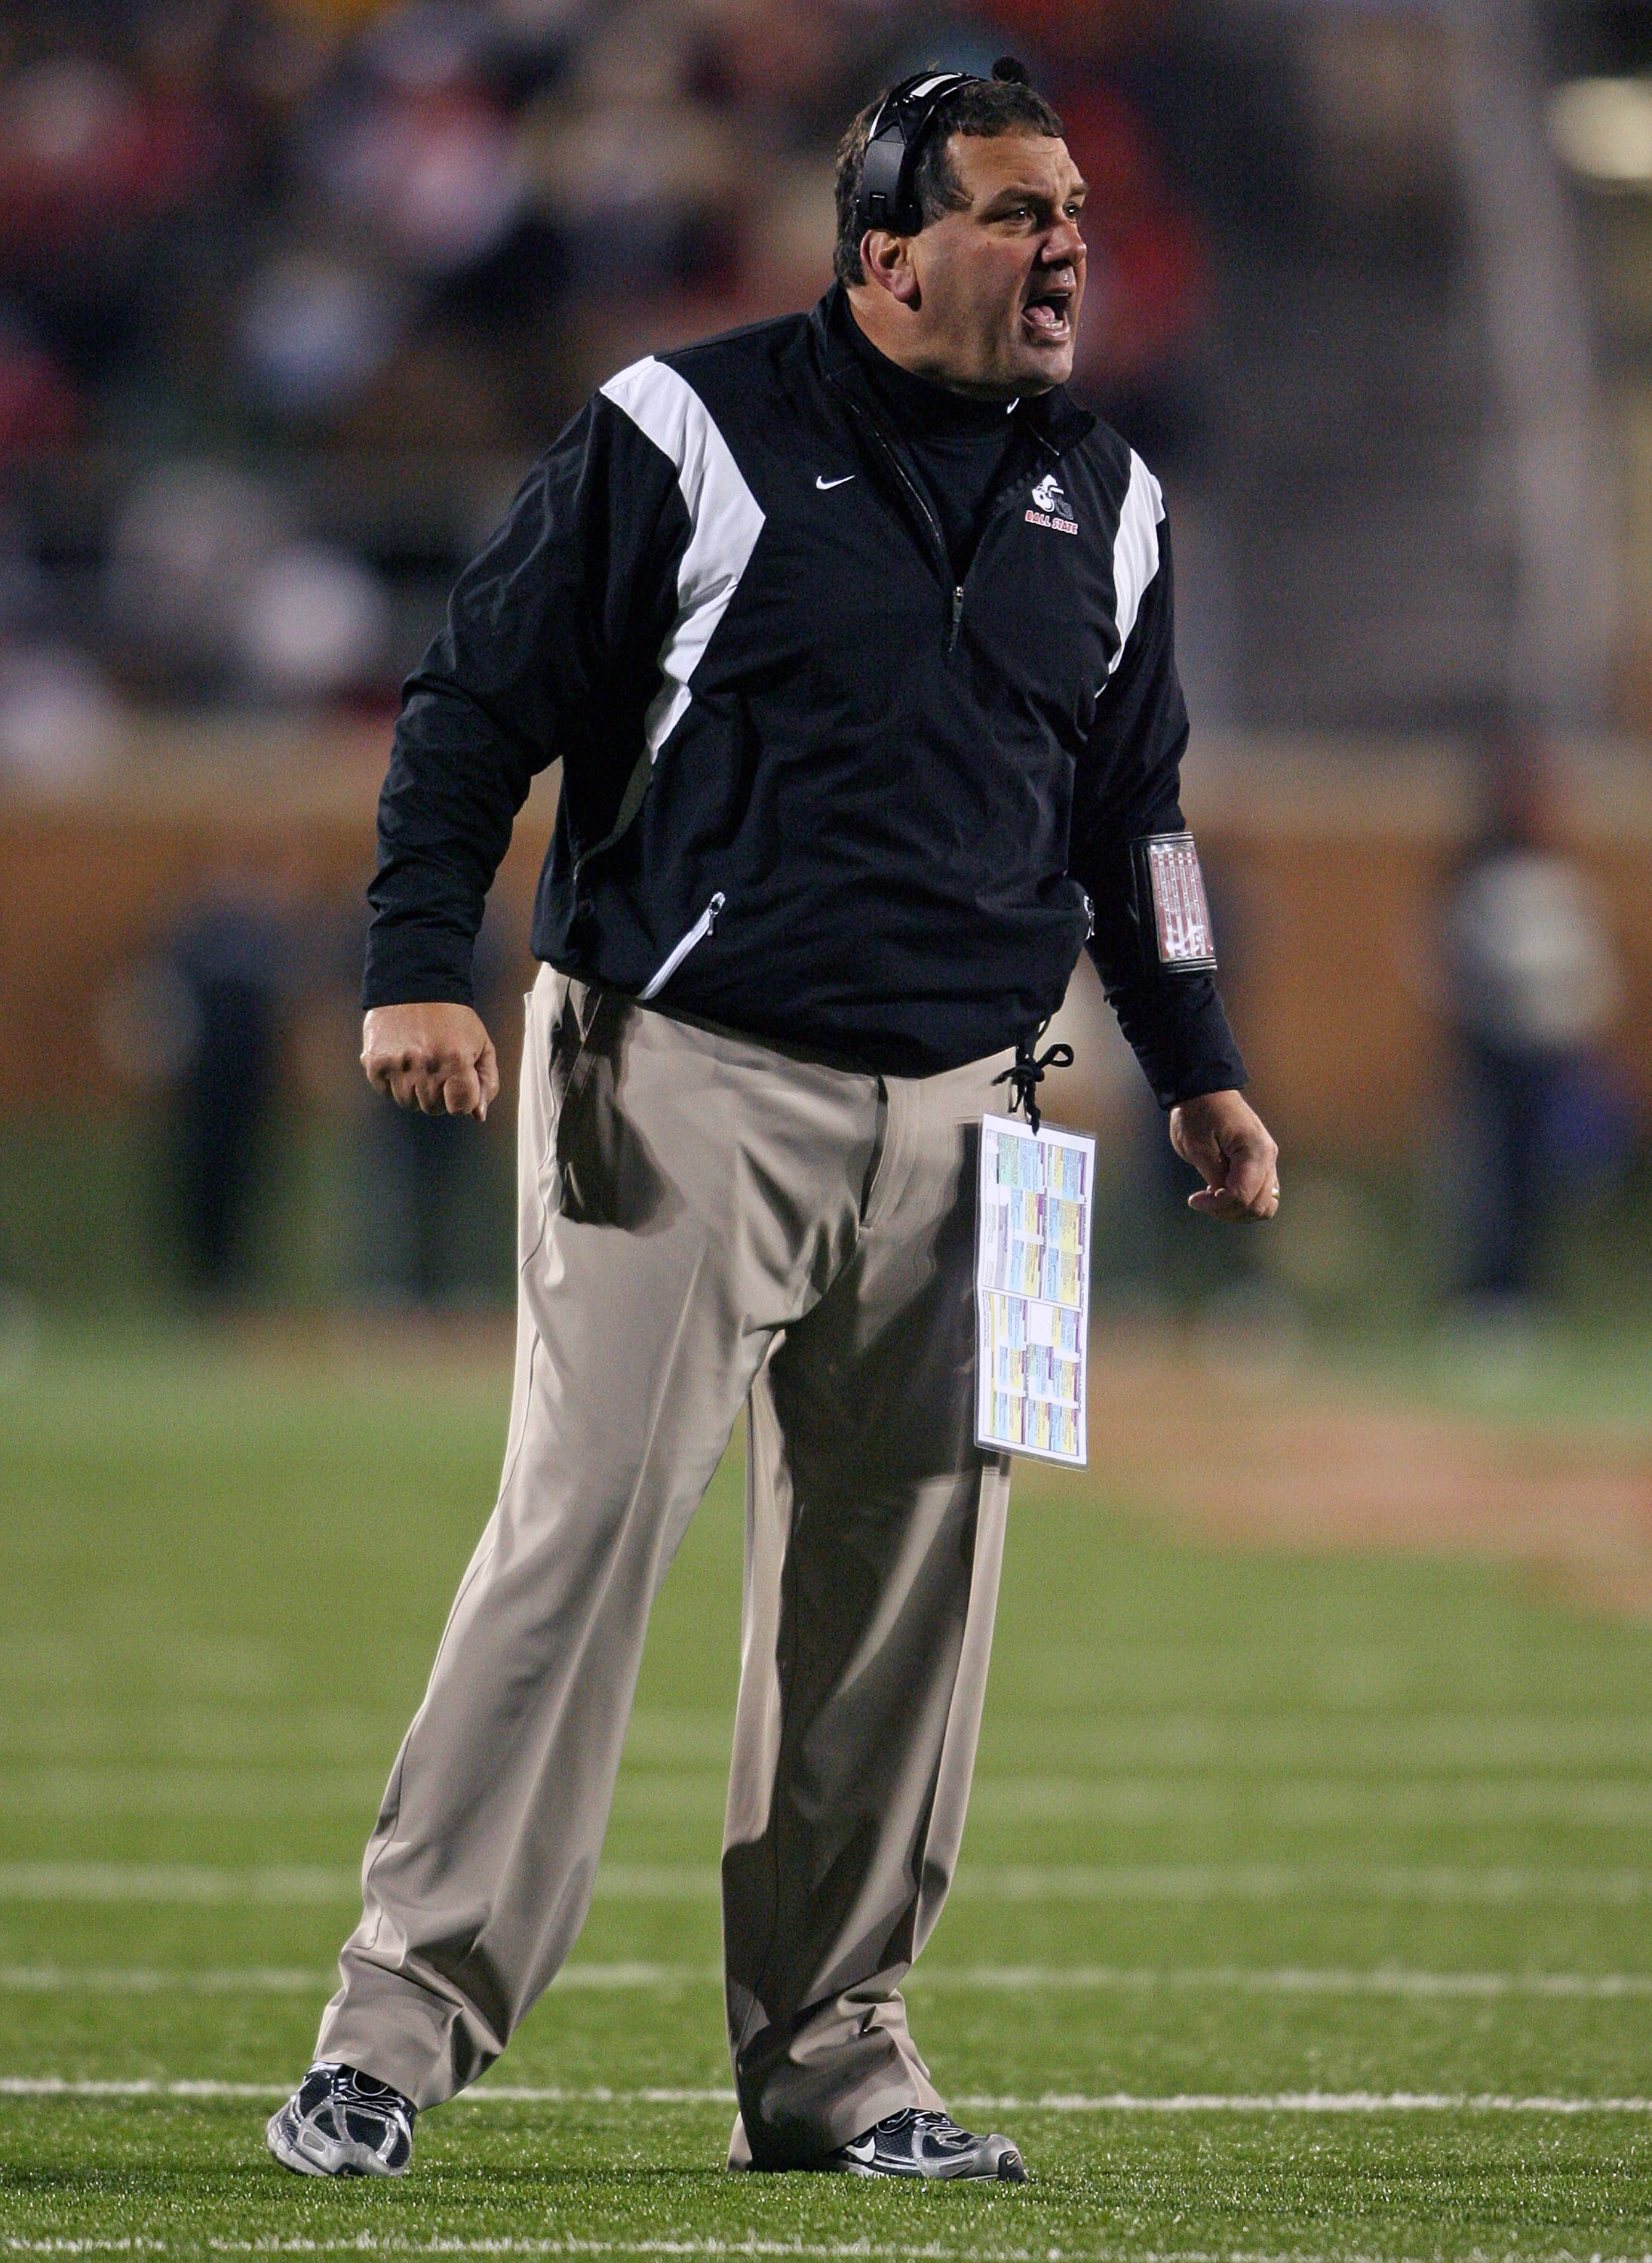 MUNCIE, IN - NOVEMBER 25:  Head coach Brady Hoke of the Ball State Cardinals stands on the field during the Mid-American Conference (MAC) game against the Western Michigan Broncos at Scheumann Stadium November 25, 2008 in Muncie, Indiana.  (Photo by Andy